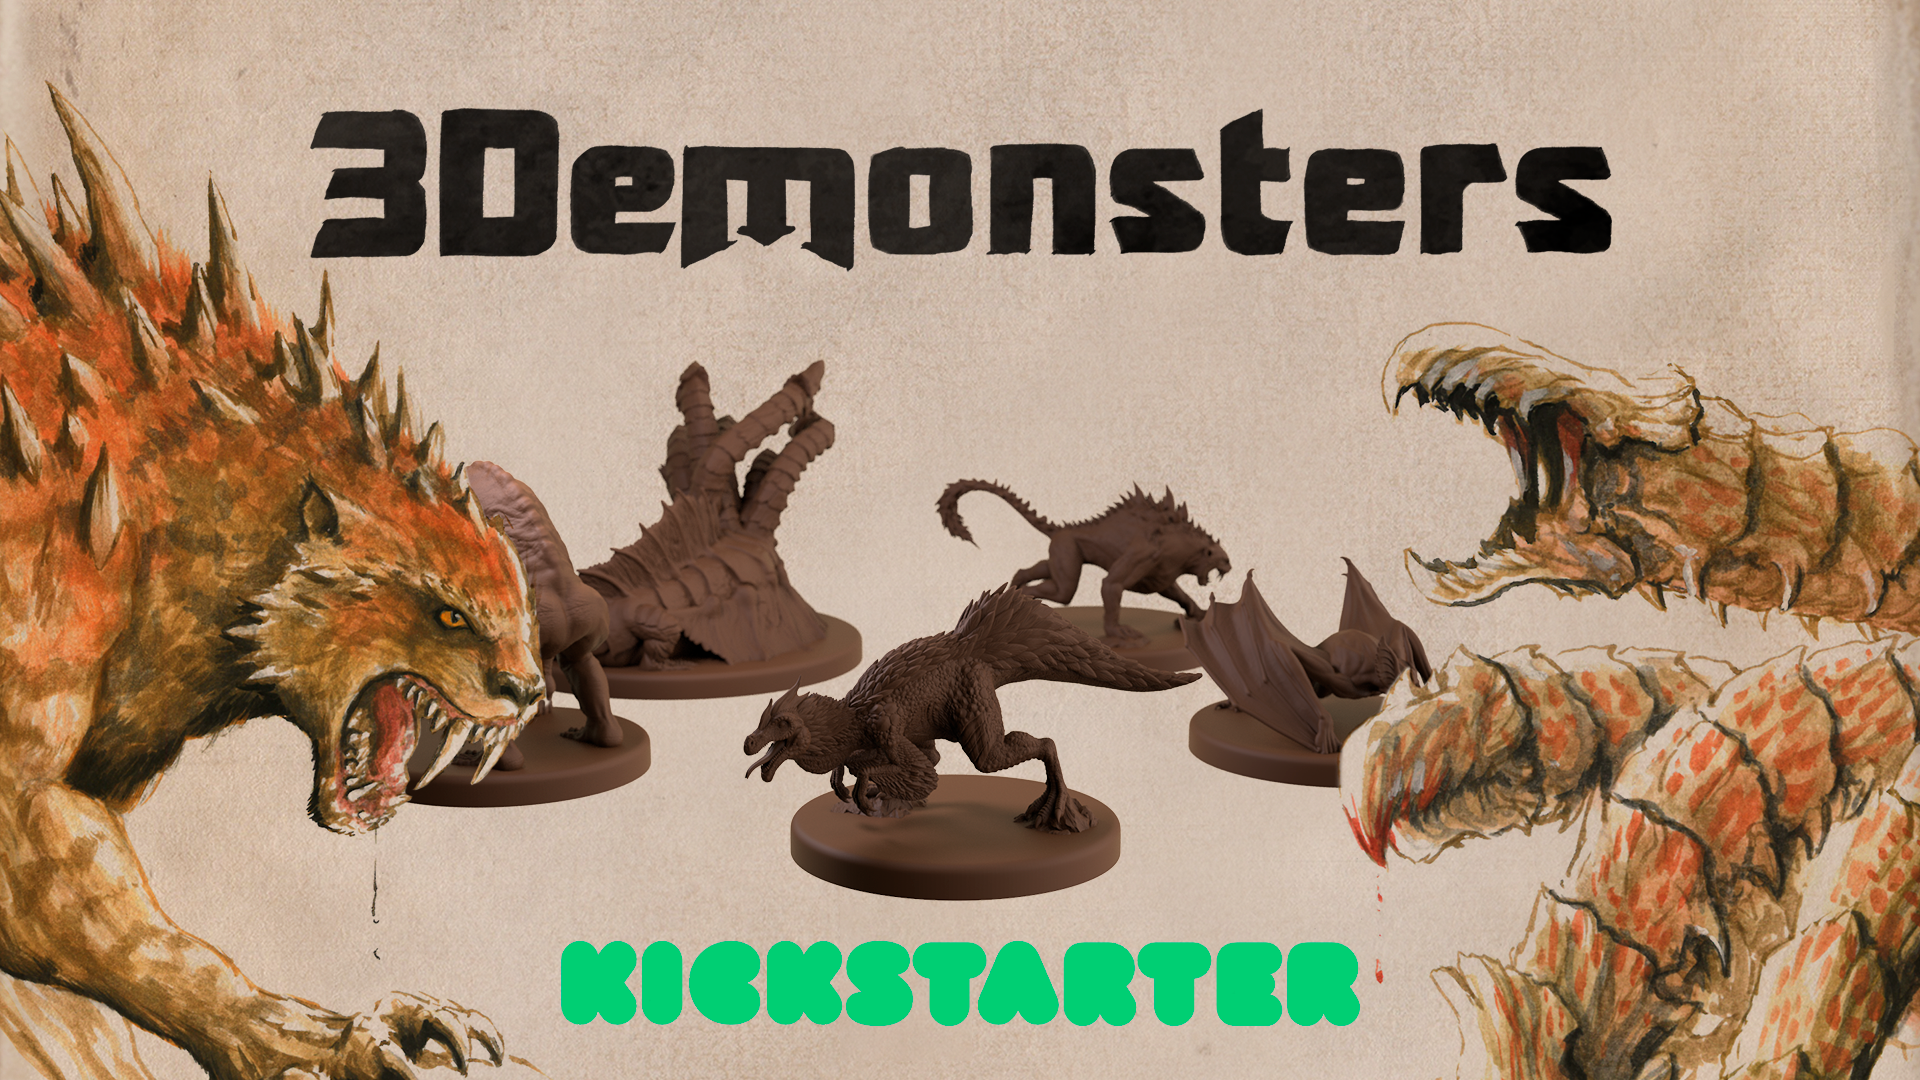 Our Kickstarter Is Now Live!